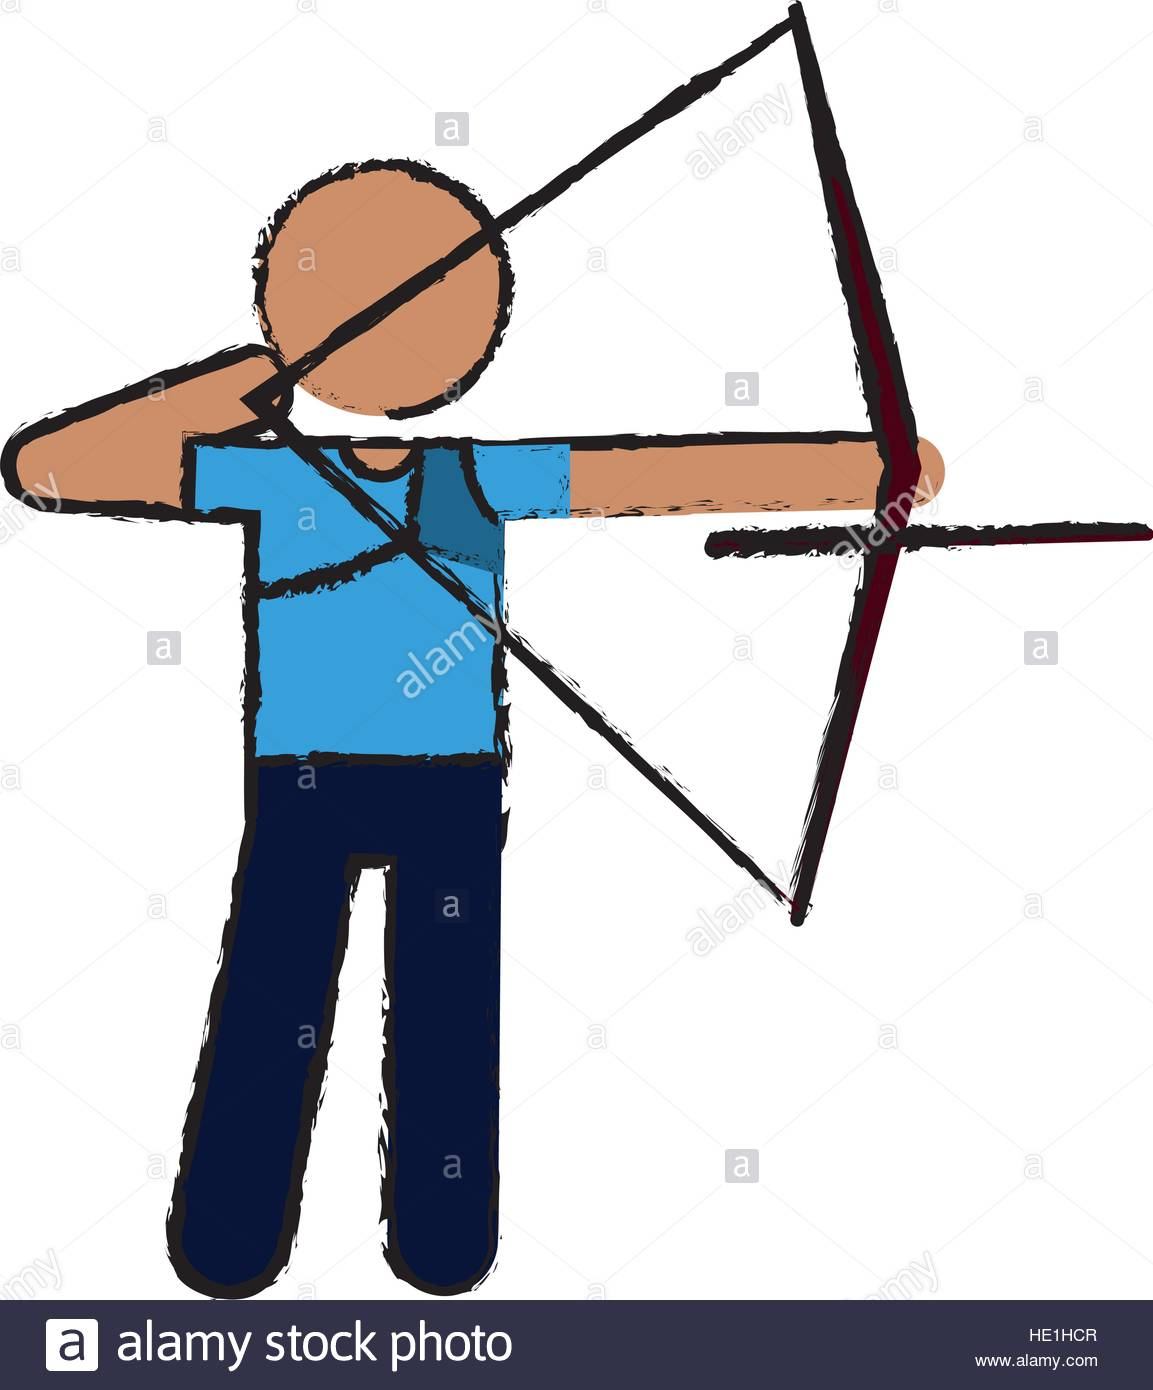 1153x1390 Drawing Archery Player Aiming Bow Game Stock Vector Art